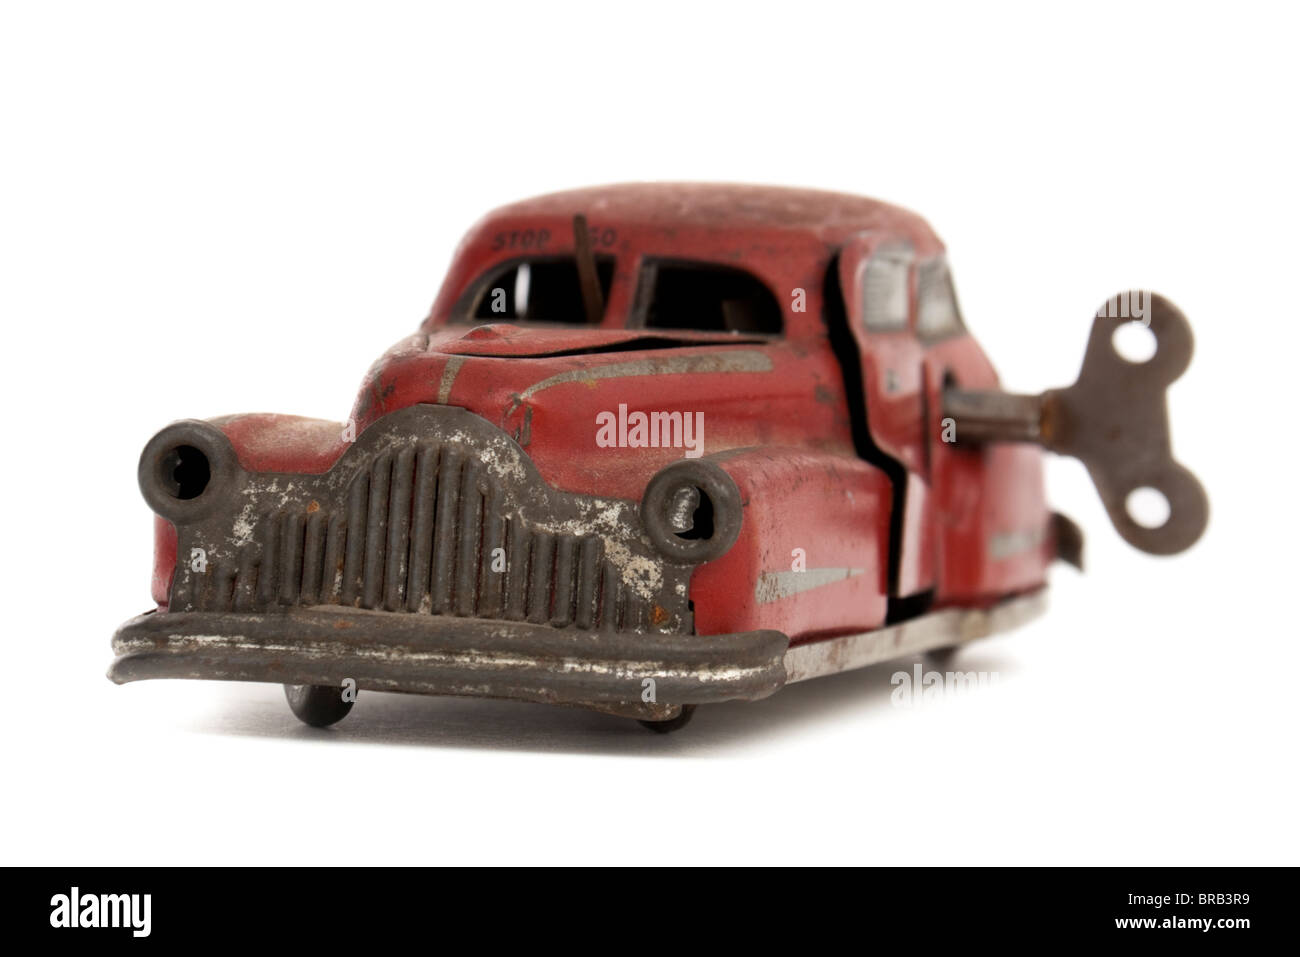 Vintage 1950's French tinplate clockwork toy car by Joustra - Stock Image